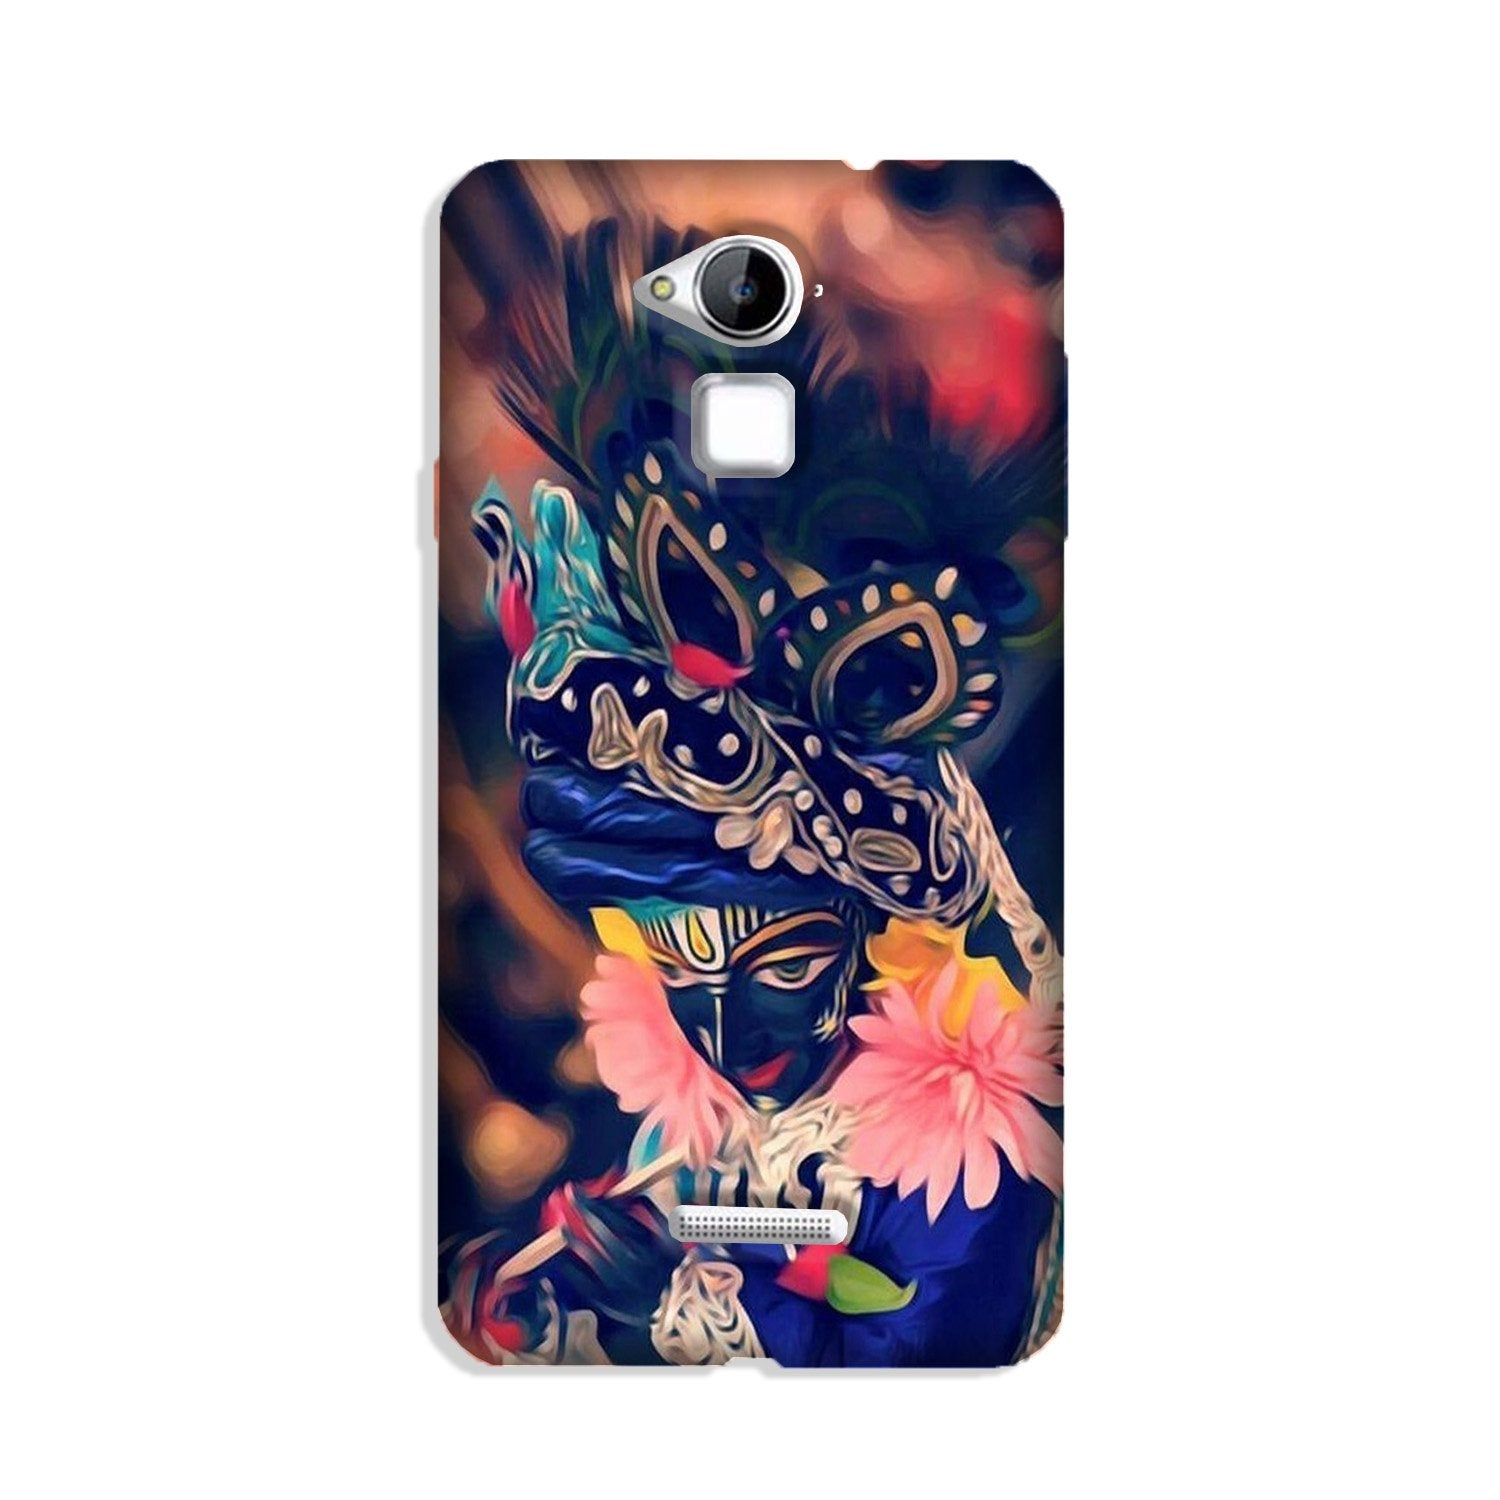 Lord Krishna Case for Coolpad Note 3